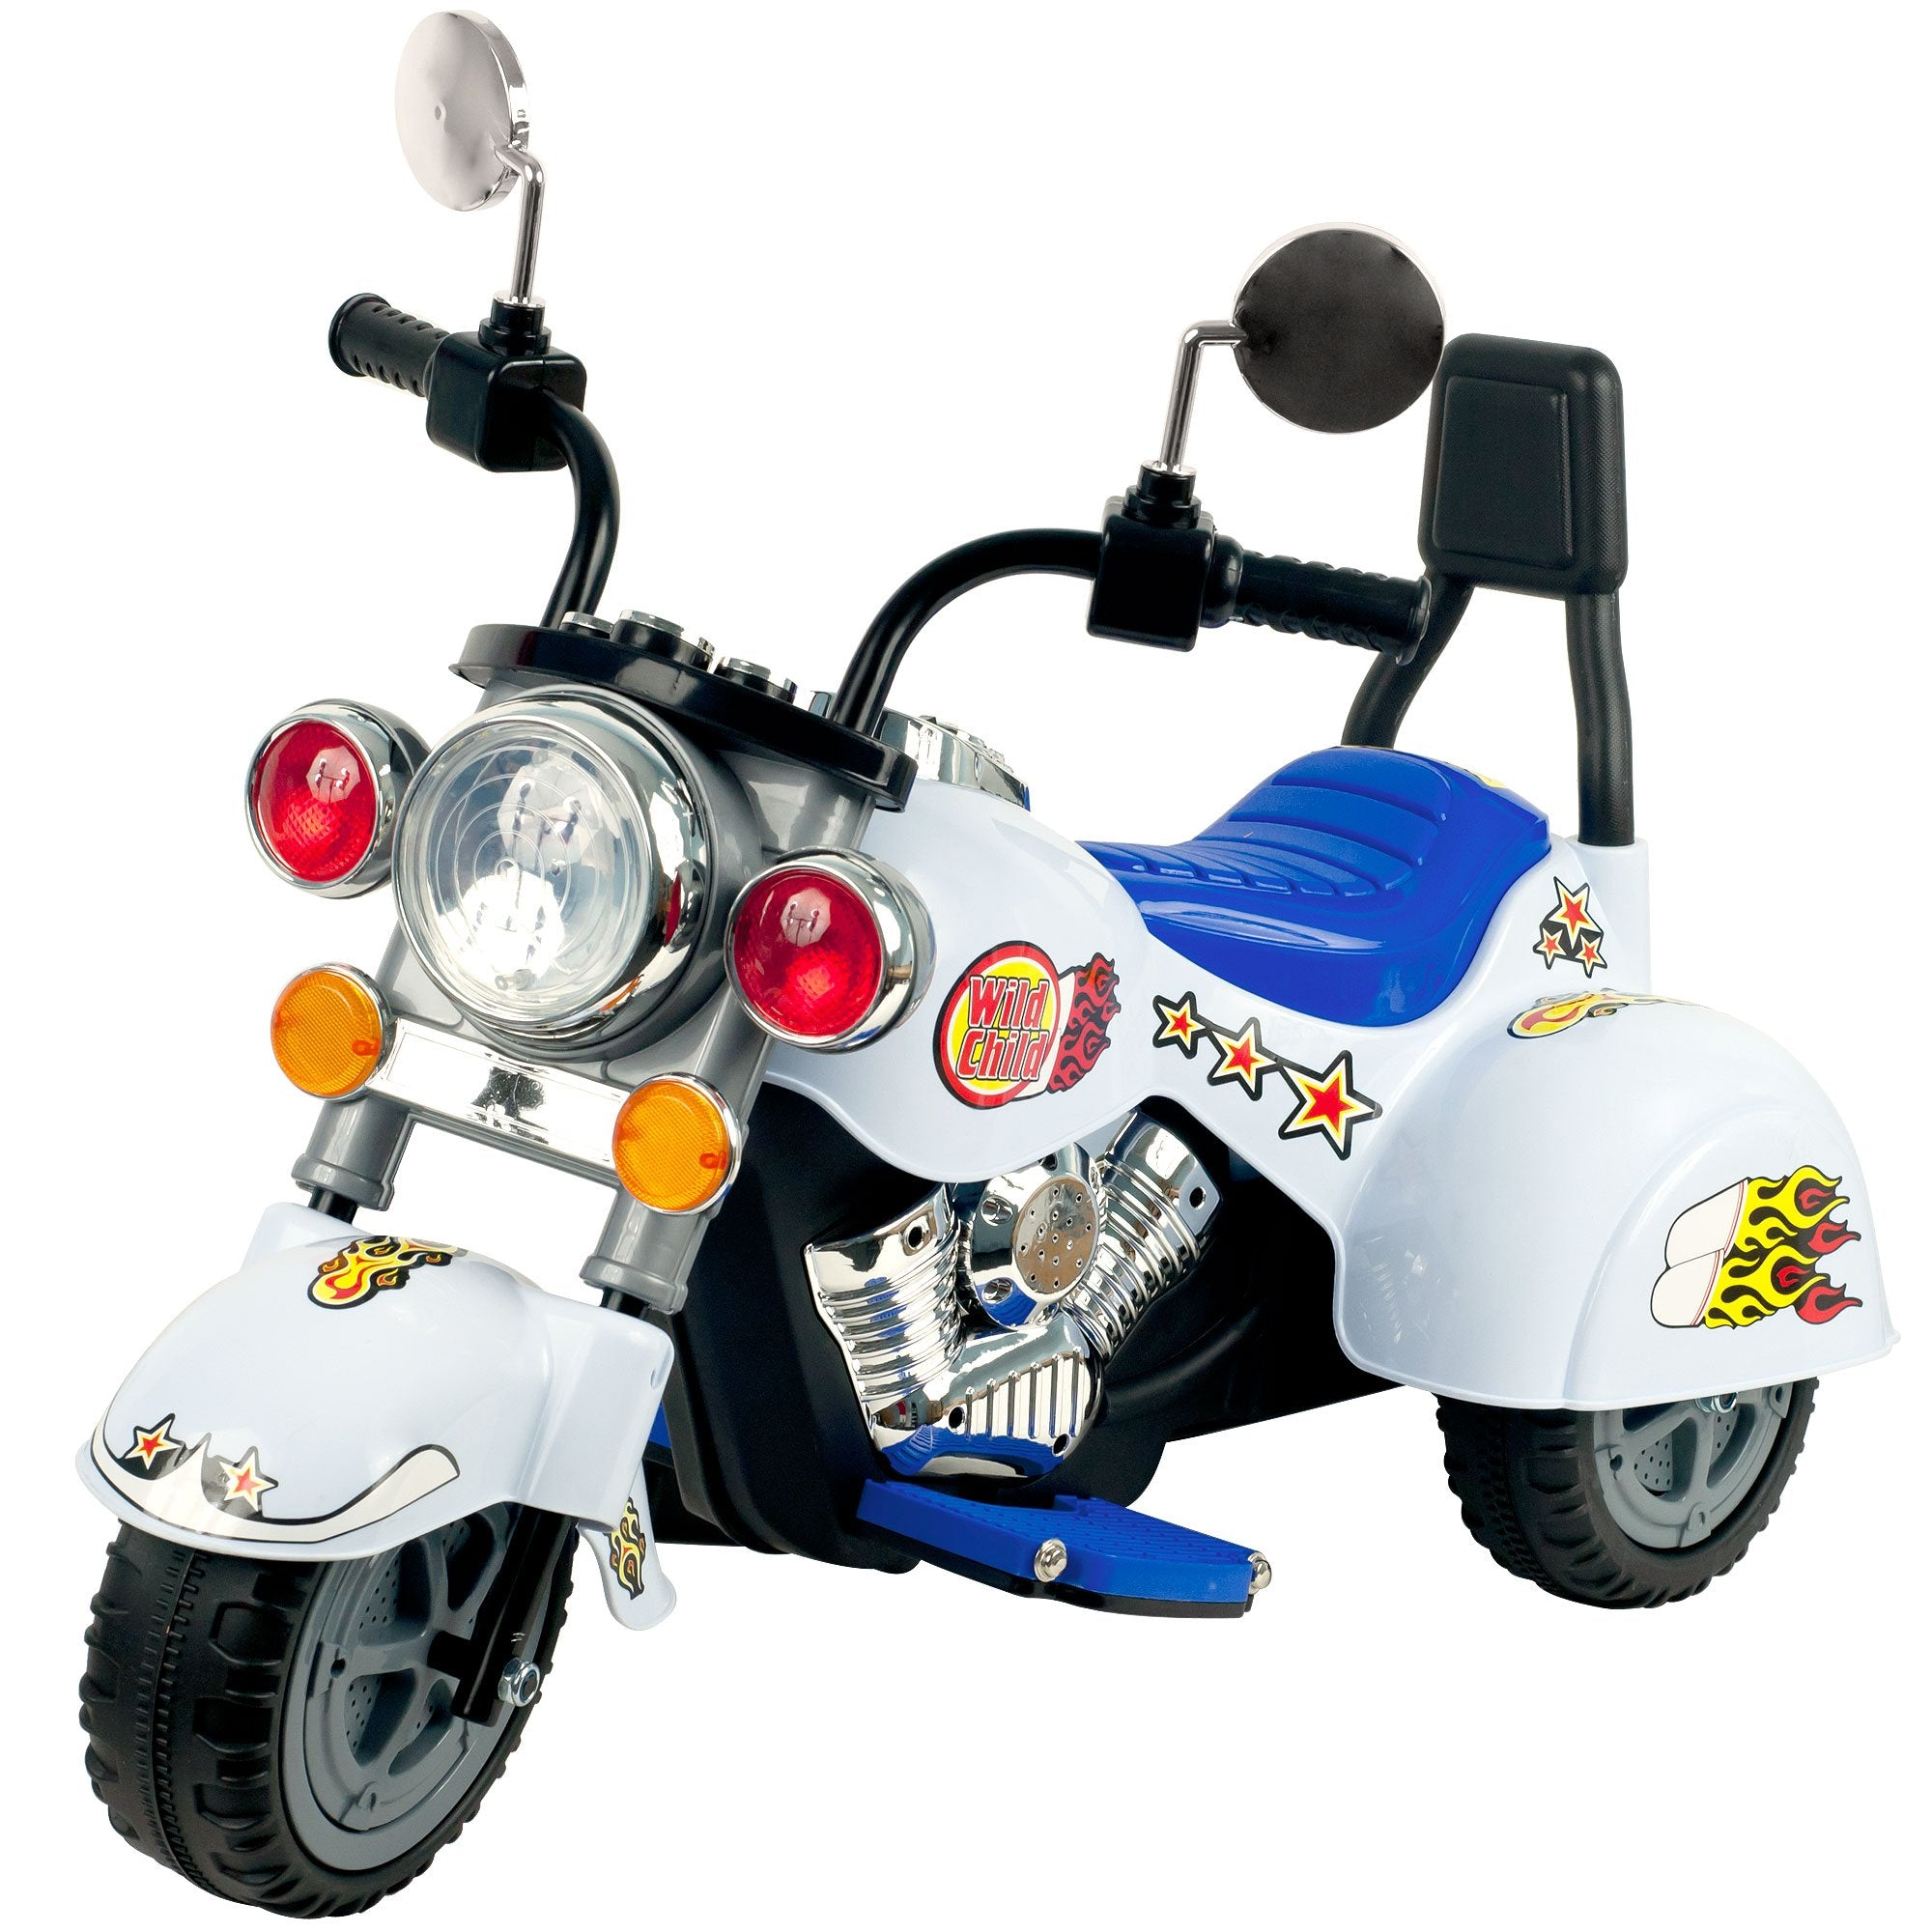 Ride on Toy, 3 Wheel Trike Chopper Motorcycle for Kids by Lil' Rider - Battery Powered Ride on Toys for Boys and Girls, Toddler and Up - White - wiihuu